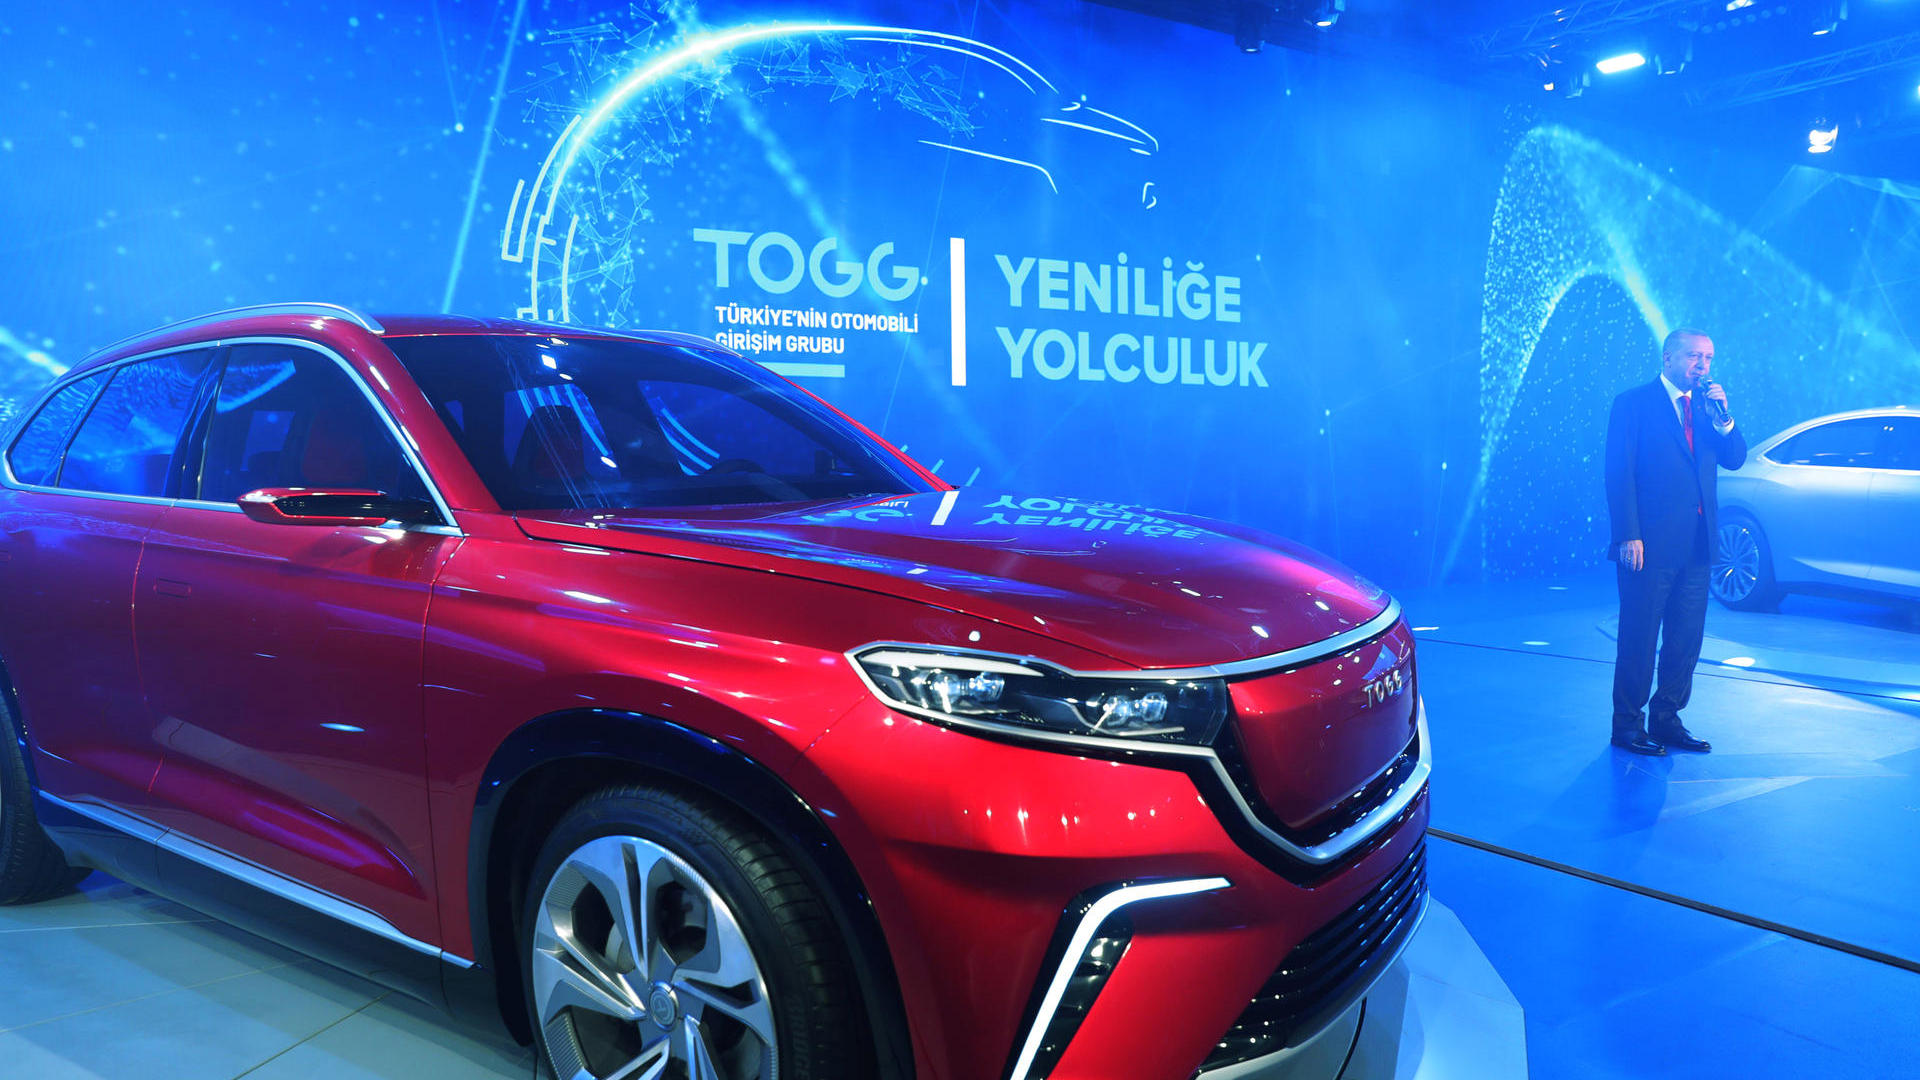 TOGG Shows First Body Assembly of Turkey's Homegrown Car 1